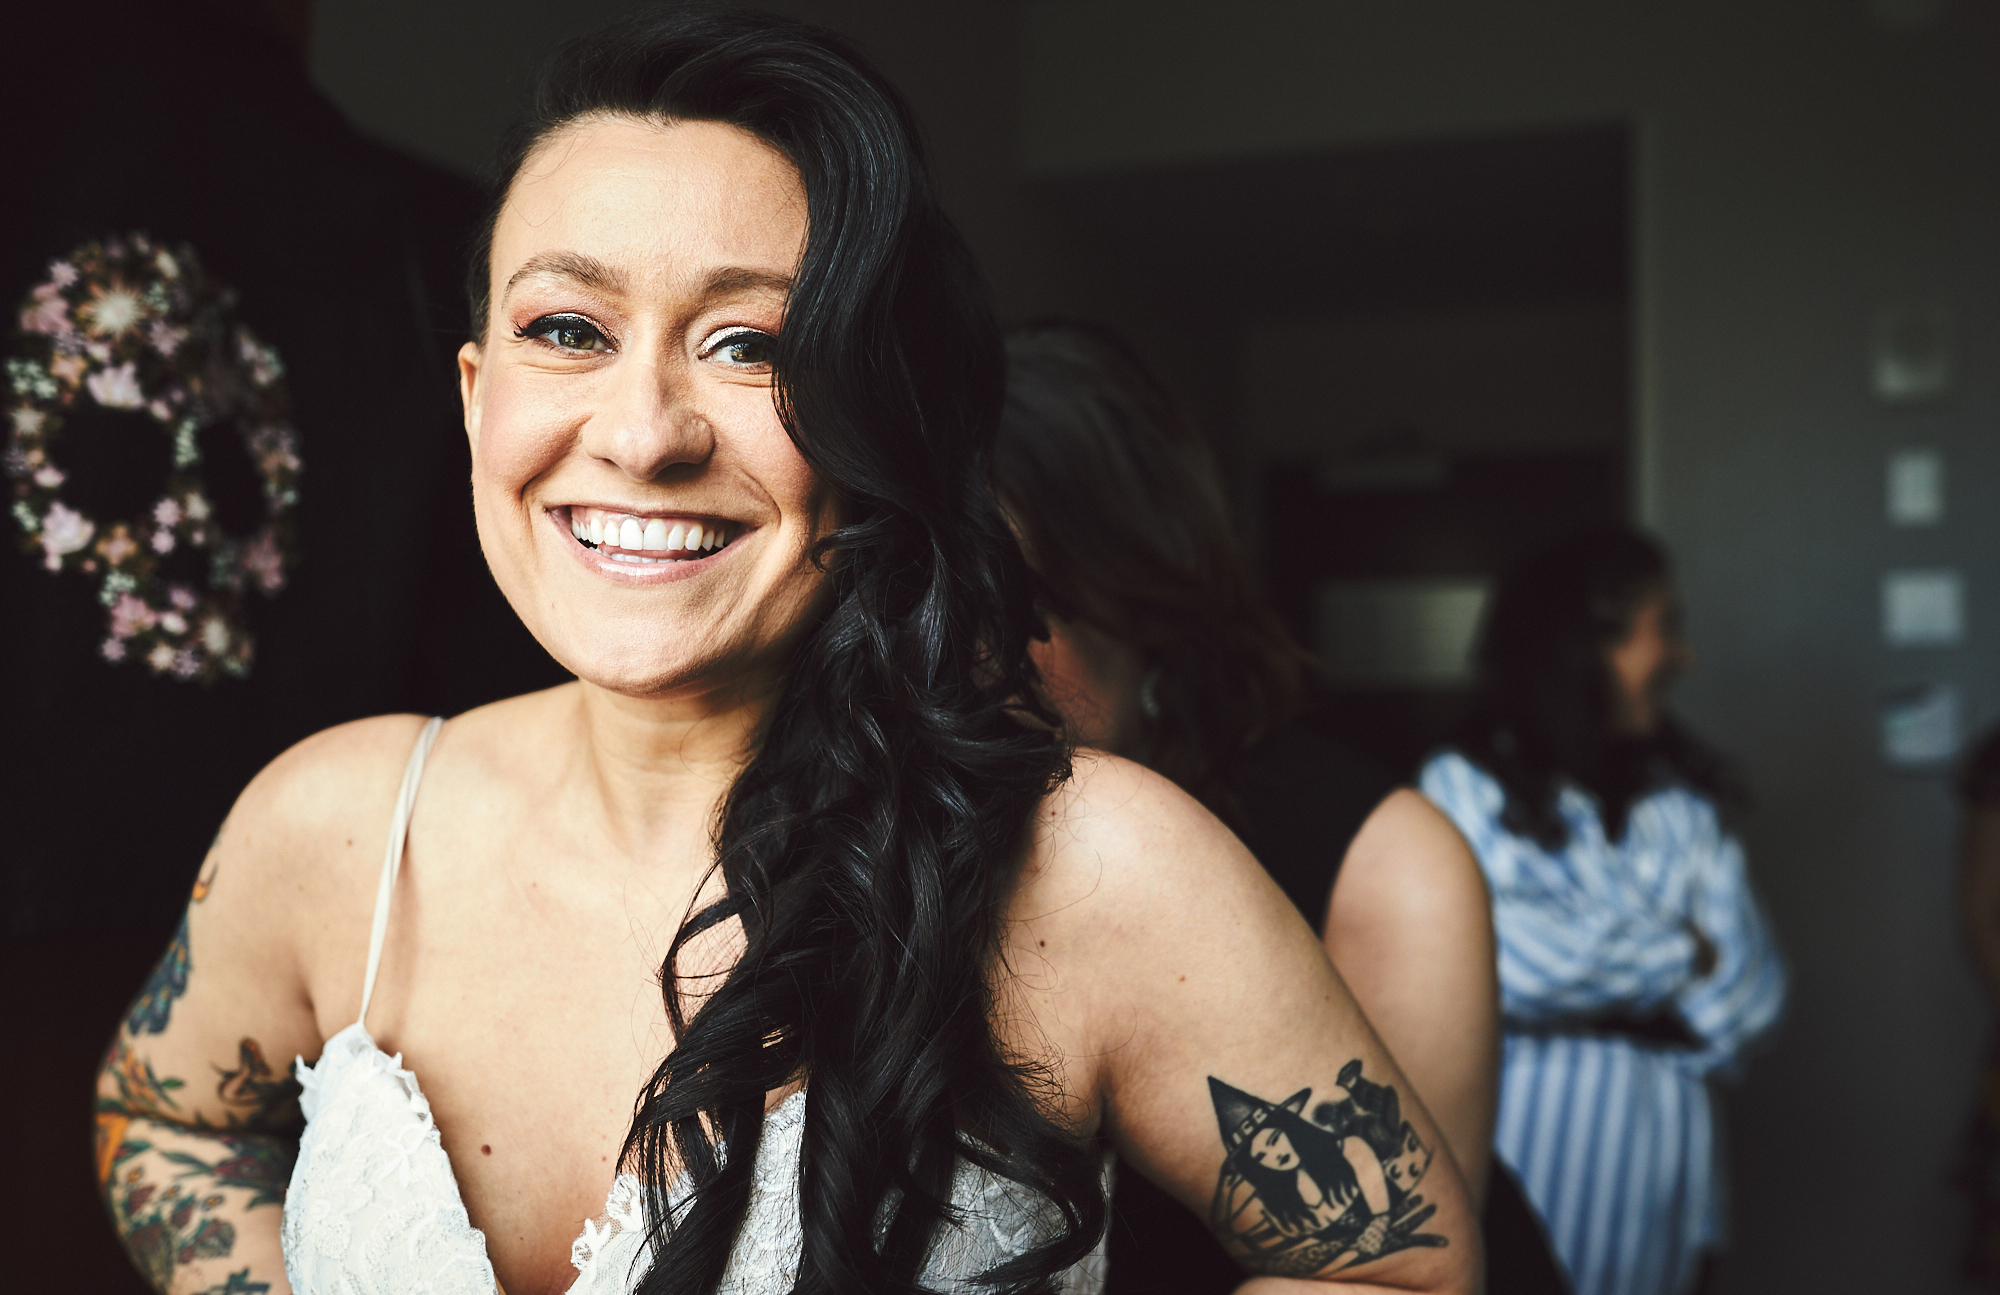 190518_SpringThreesBreweryWedding_By_BriJohnsonWeddings_0029.jpg